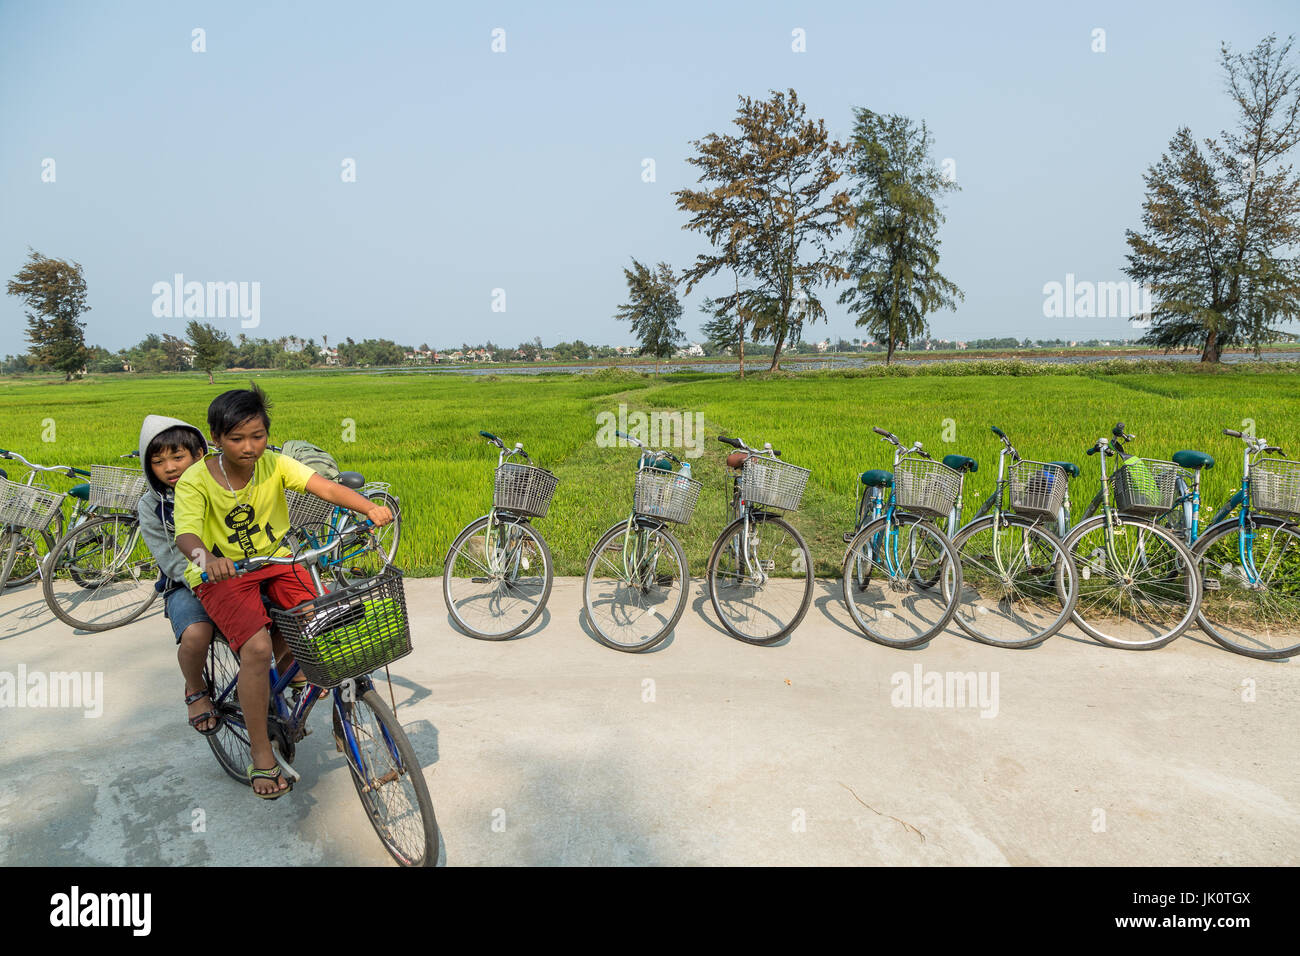 Two boys on one bike speed round the corner by a rice paddy - Hoi An - 13 March 2017 Stock Photo